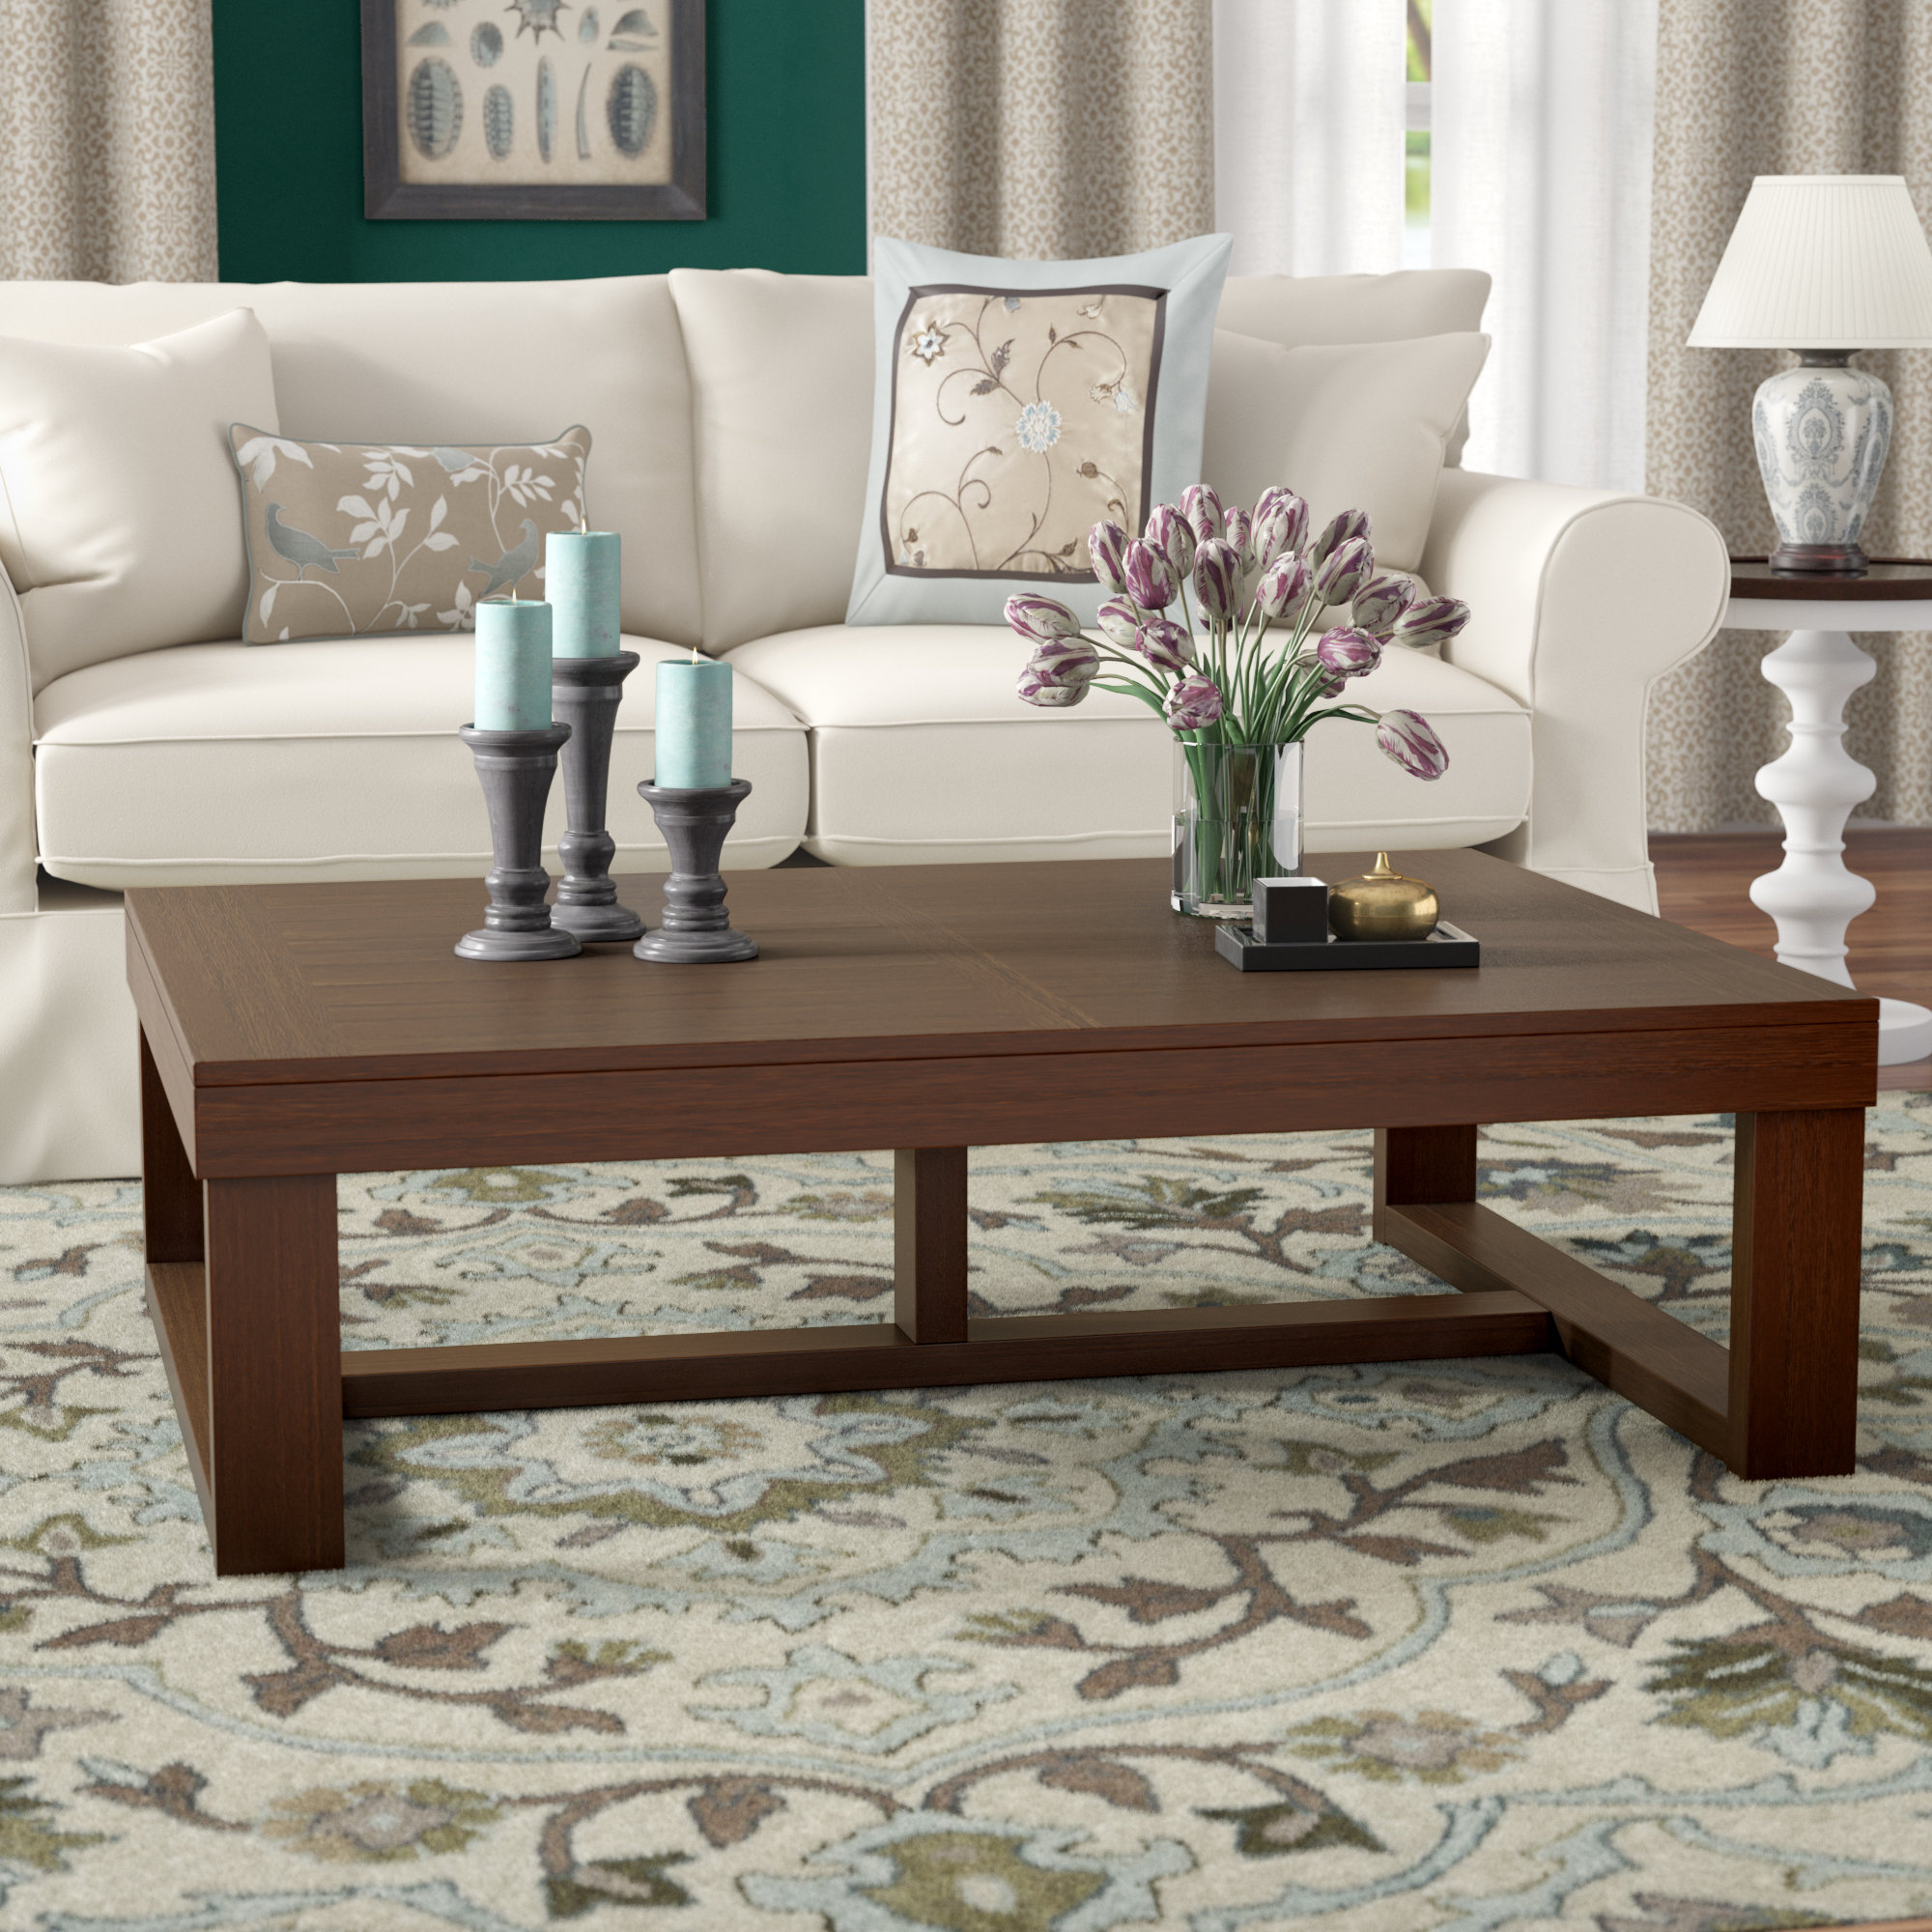 Wayfair In Newest Jessa Rustic Country 54 Inch Coffee Tables (View 15 of 20)